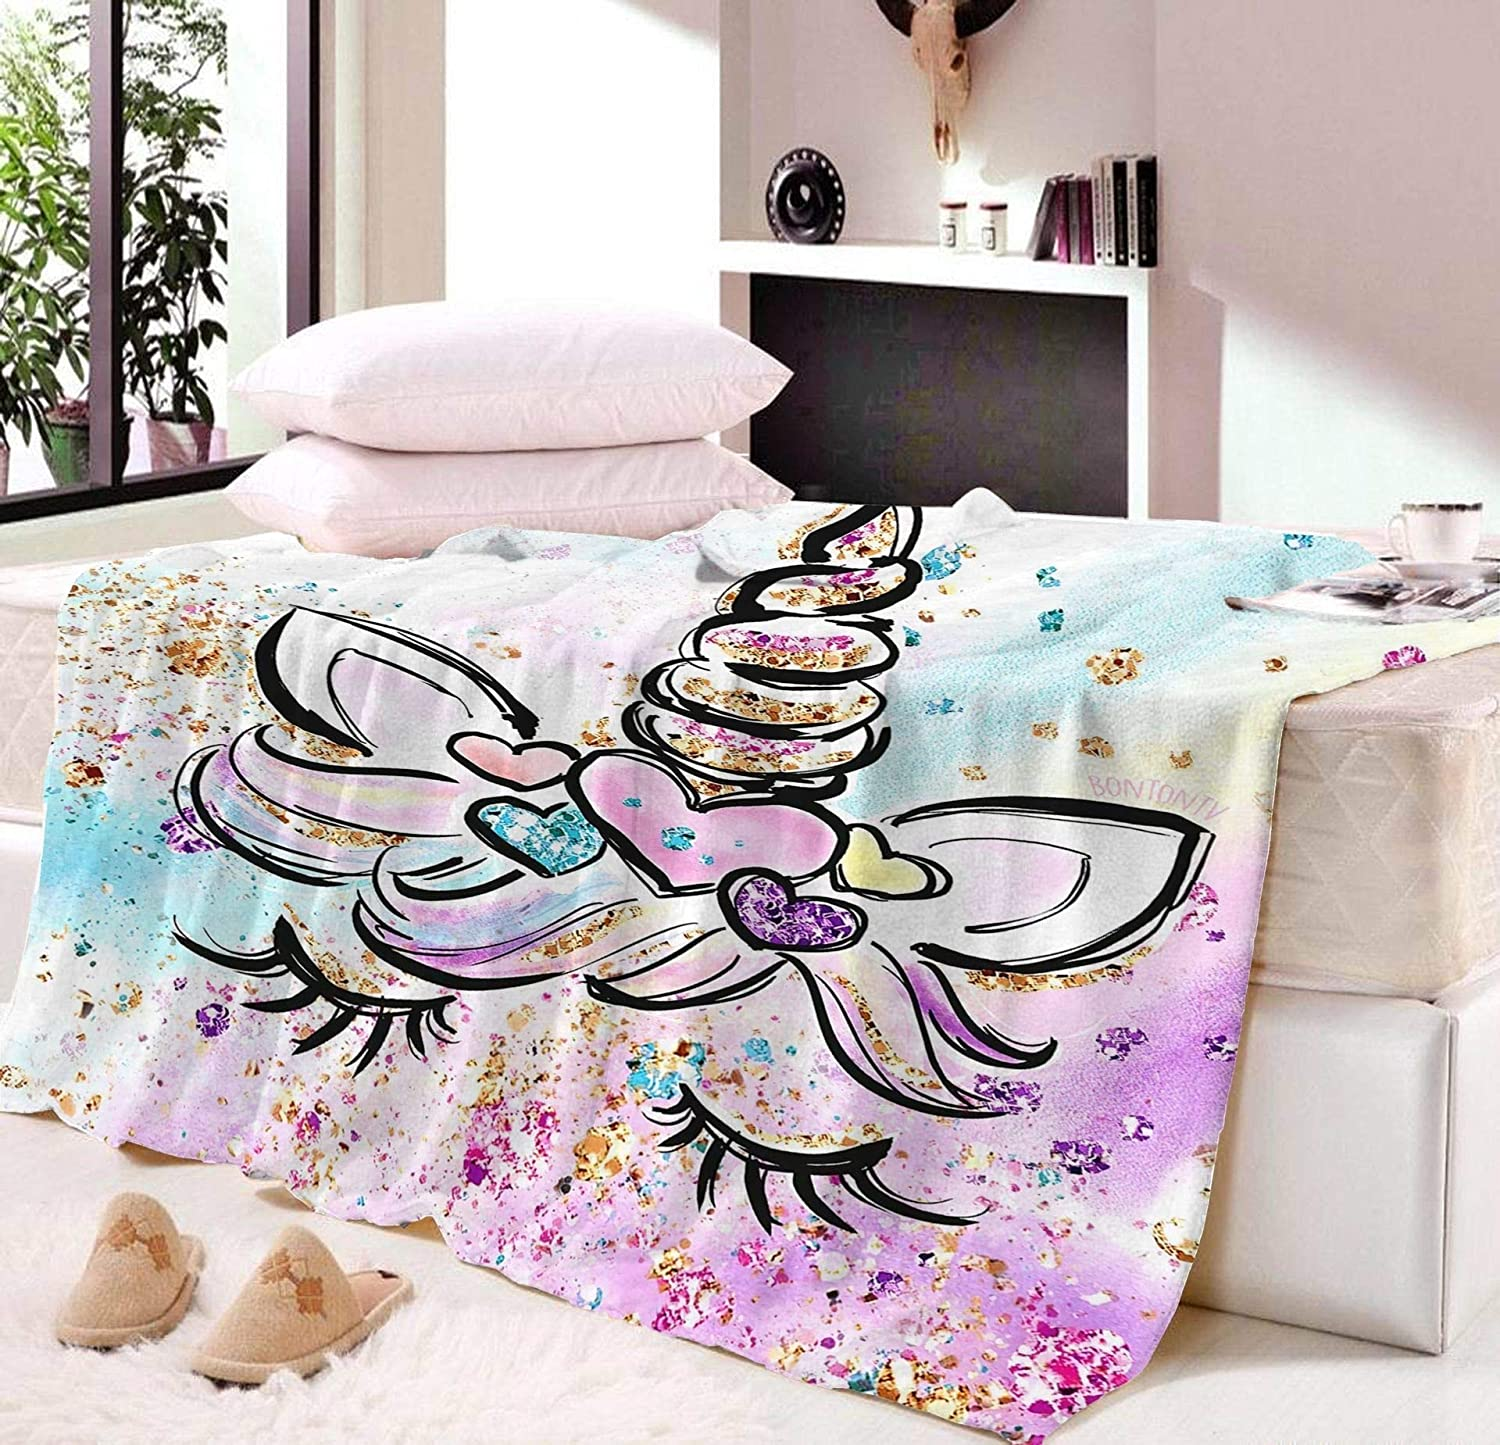 xingwang Unicorn Nap Blanket Super Attention NEW before selling brand for Autumn Modern Spring Soft